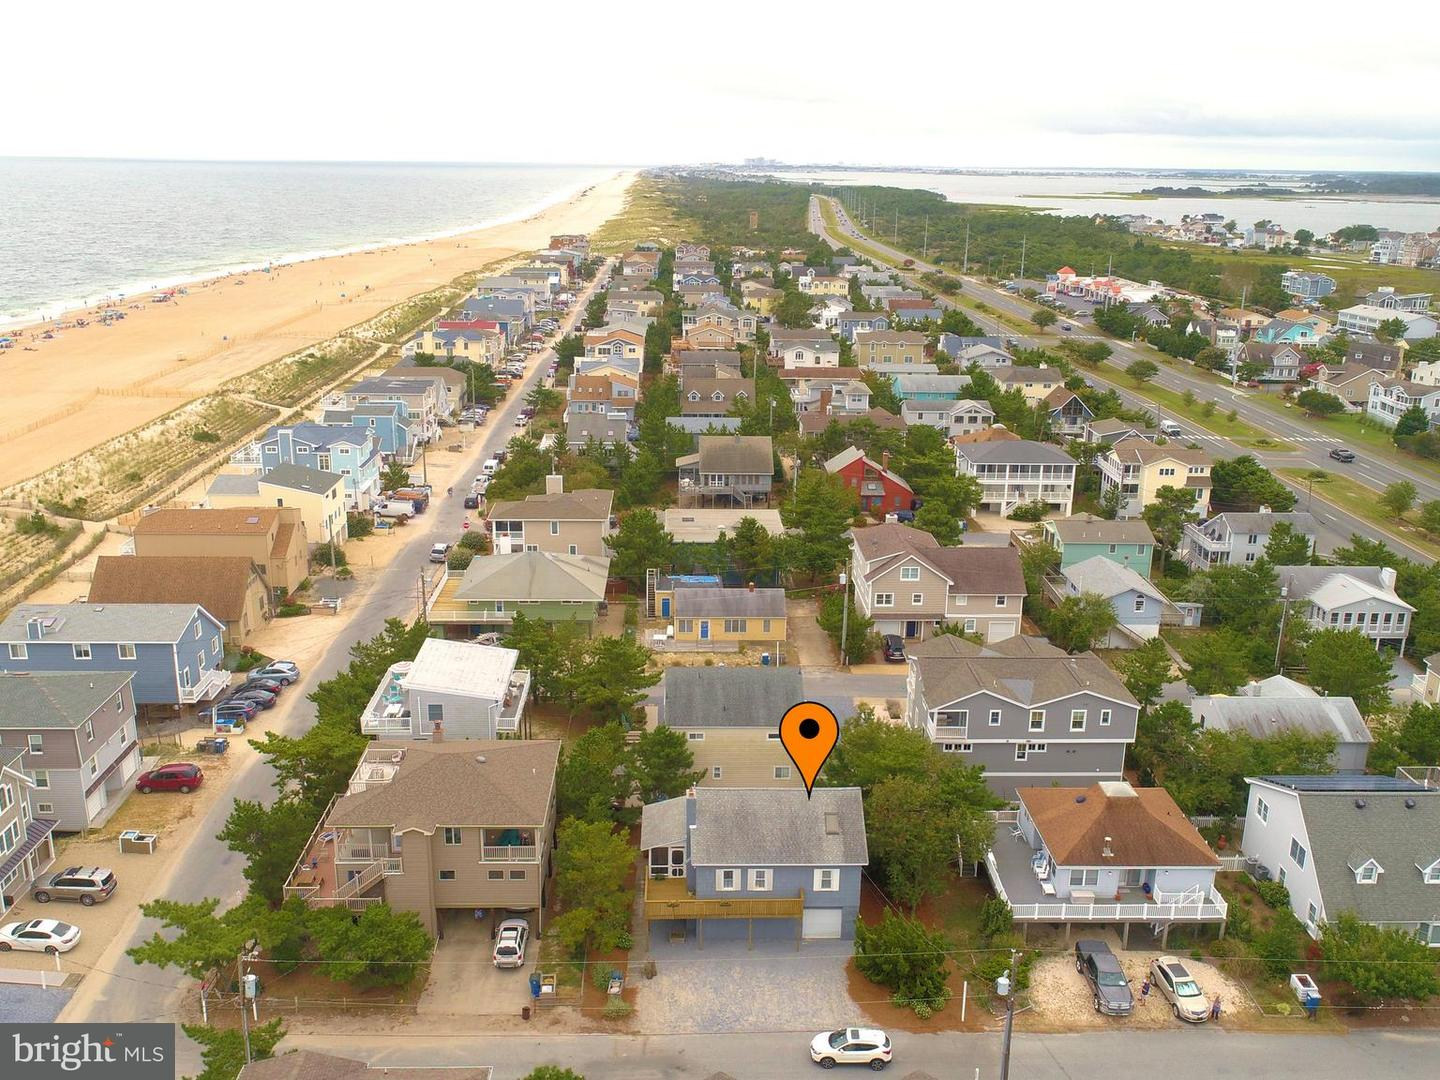 1002299338-300501703091-2018-08-30-10-08-41 4 S 4th St | South Bethany, De Real Estate For Sale | MLS# 1002299338  - Suzanne Macnab